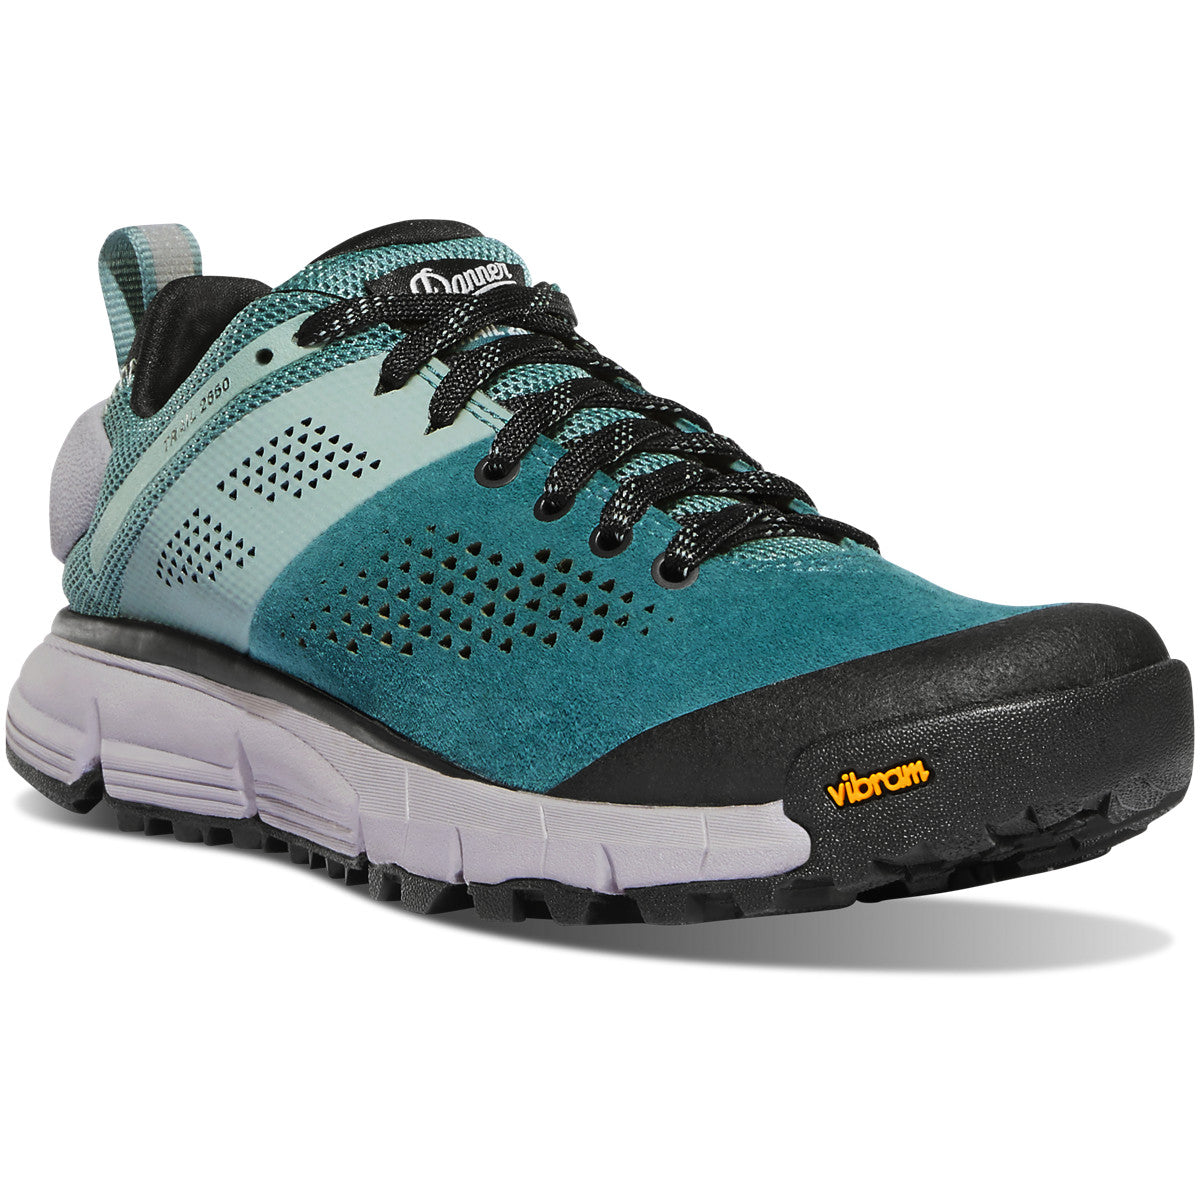 Danner Women's Trail 2650 Shoe - 88 Gear